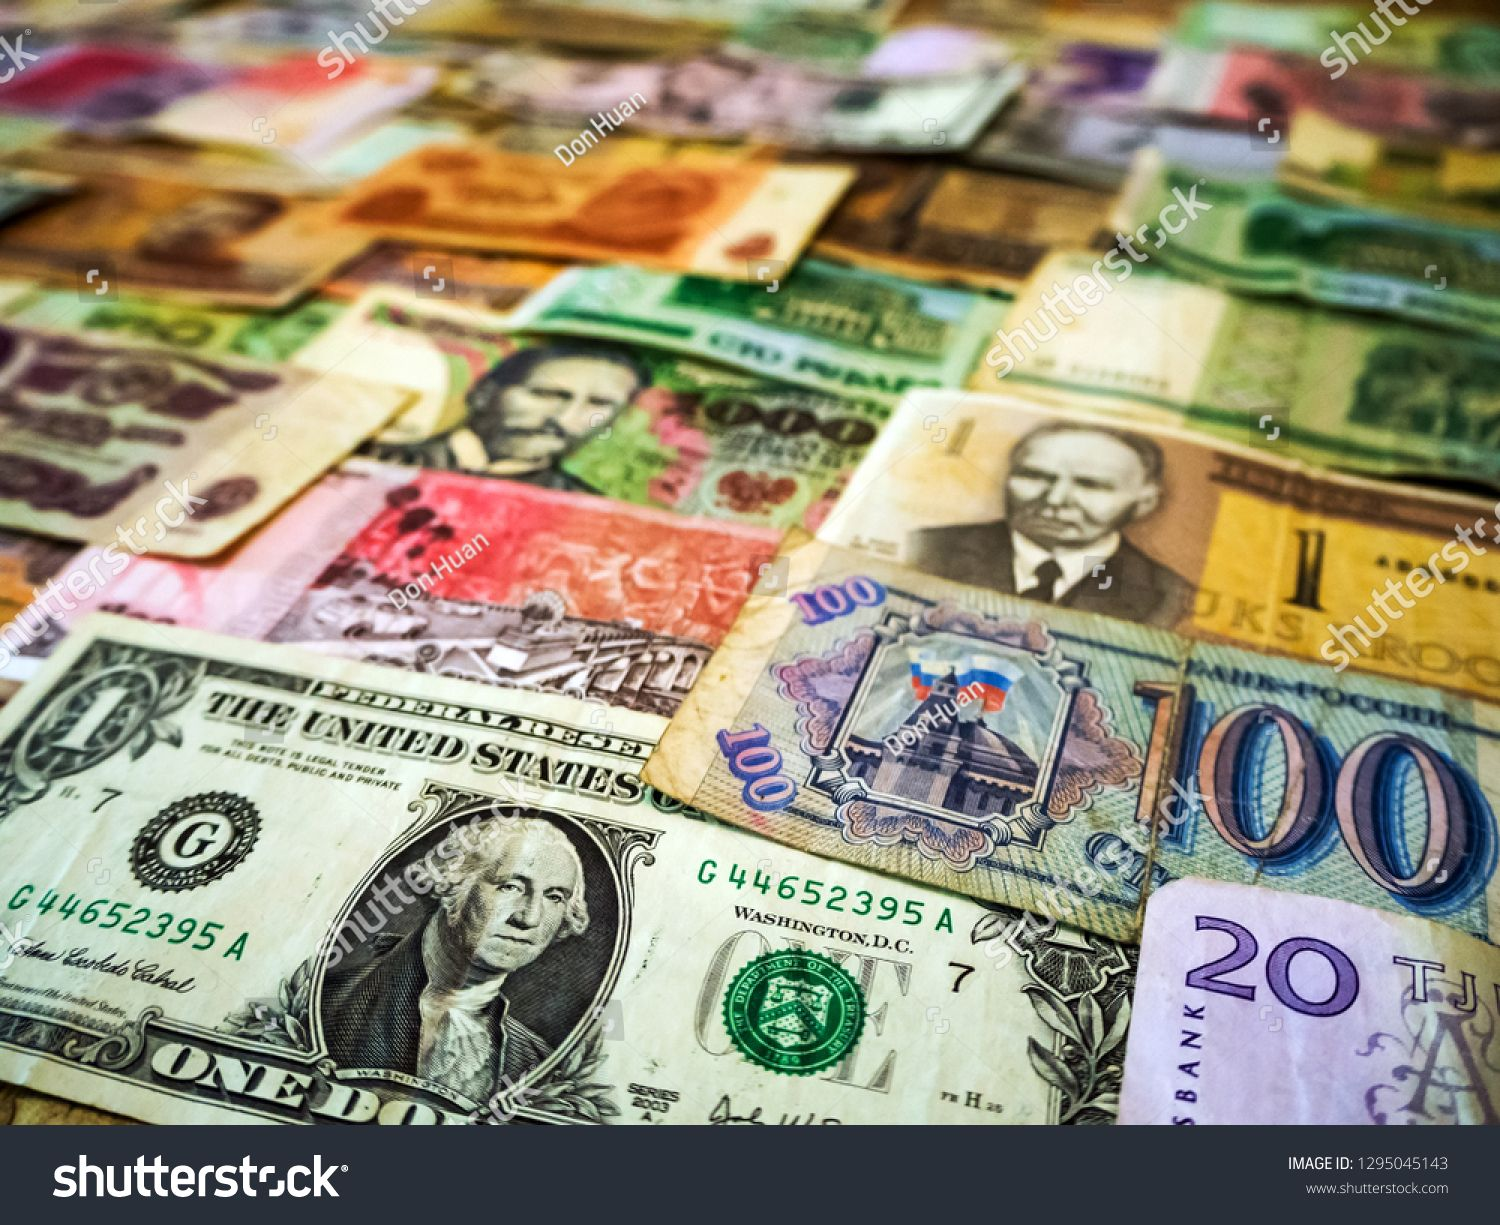 Real International Banknotes From World Major Countries Financial Economy Background For Desktop Wallpaper Money Texture Lots Wad Bank Notes Currency Majors